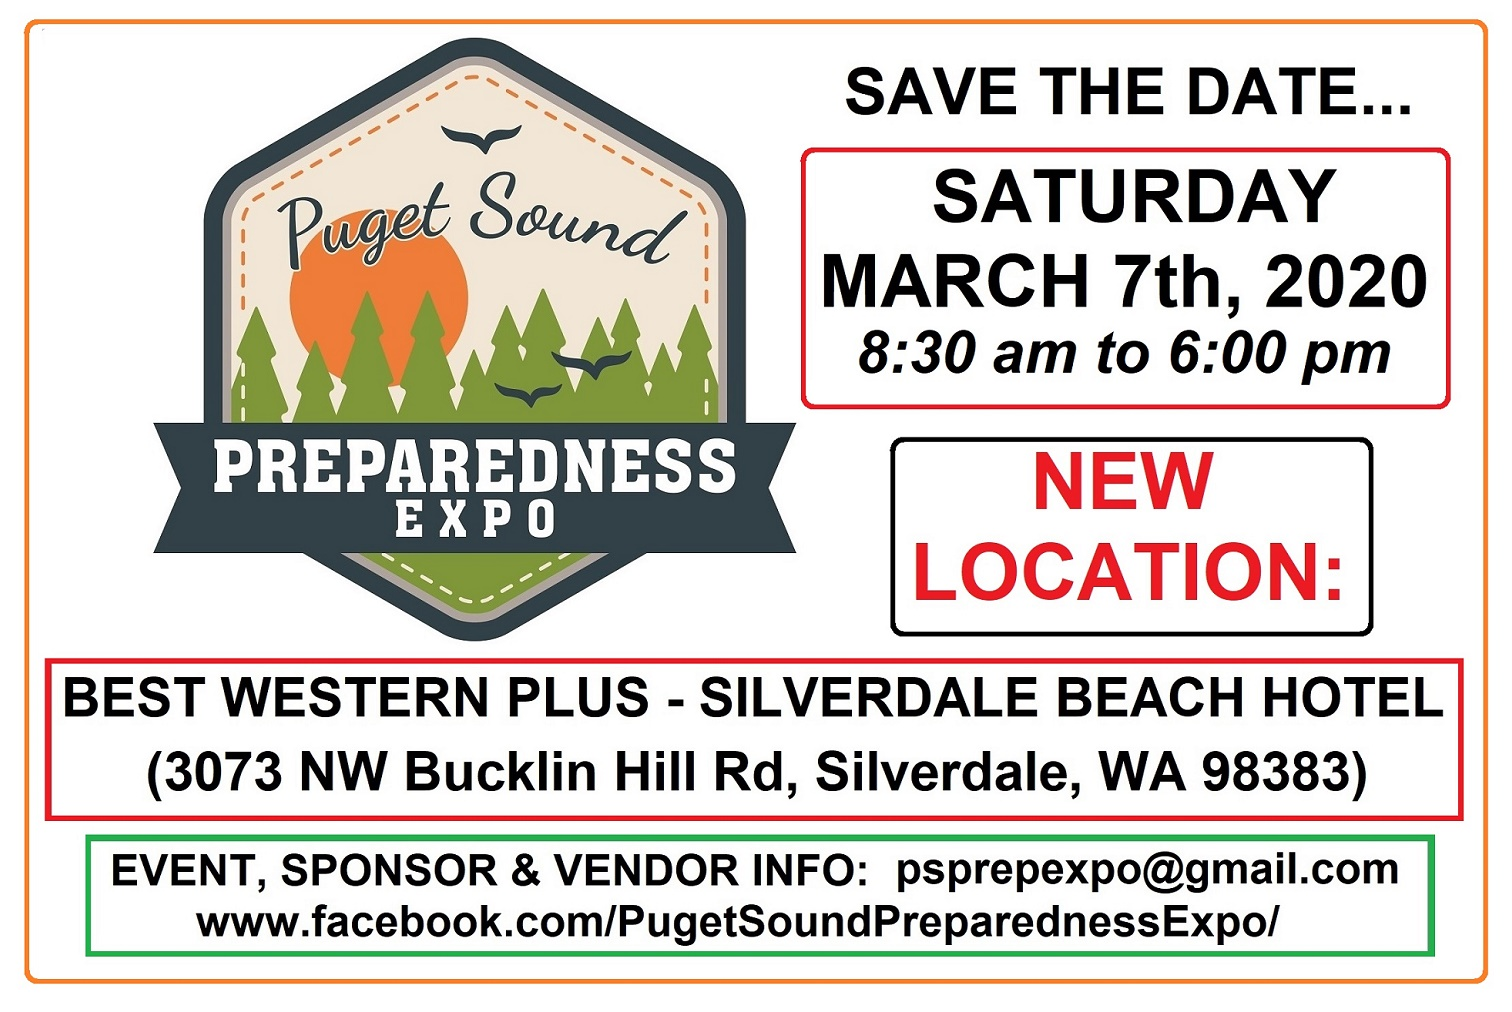 Puget Sound Preparedness Expo 2020